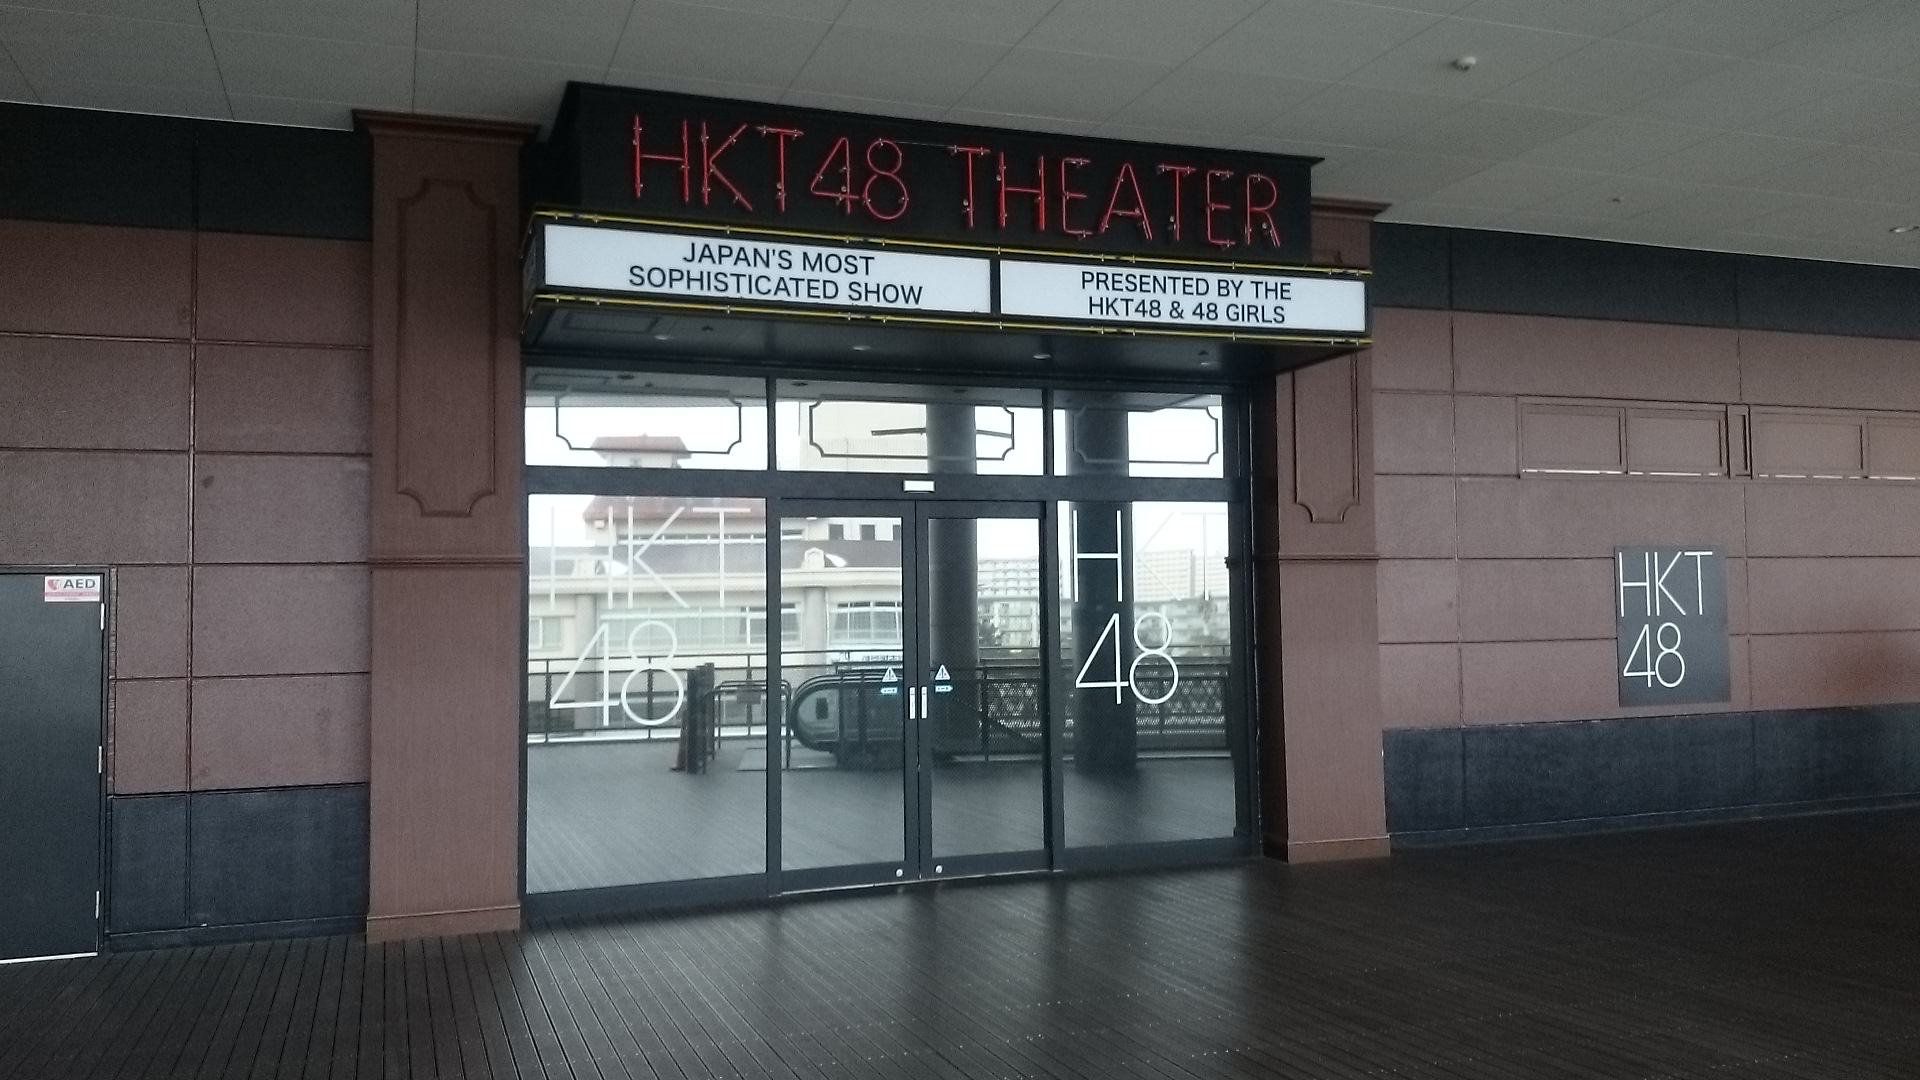 hkt48 theater front view